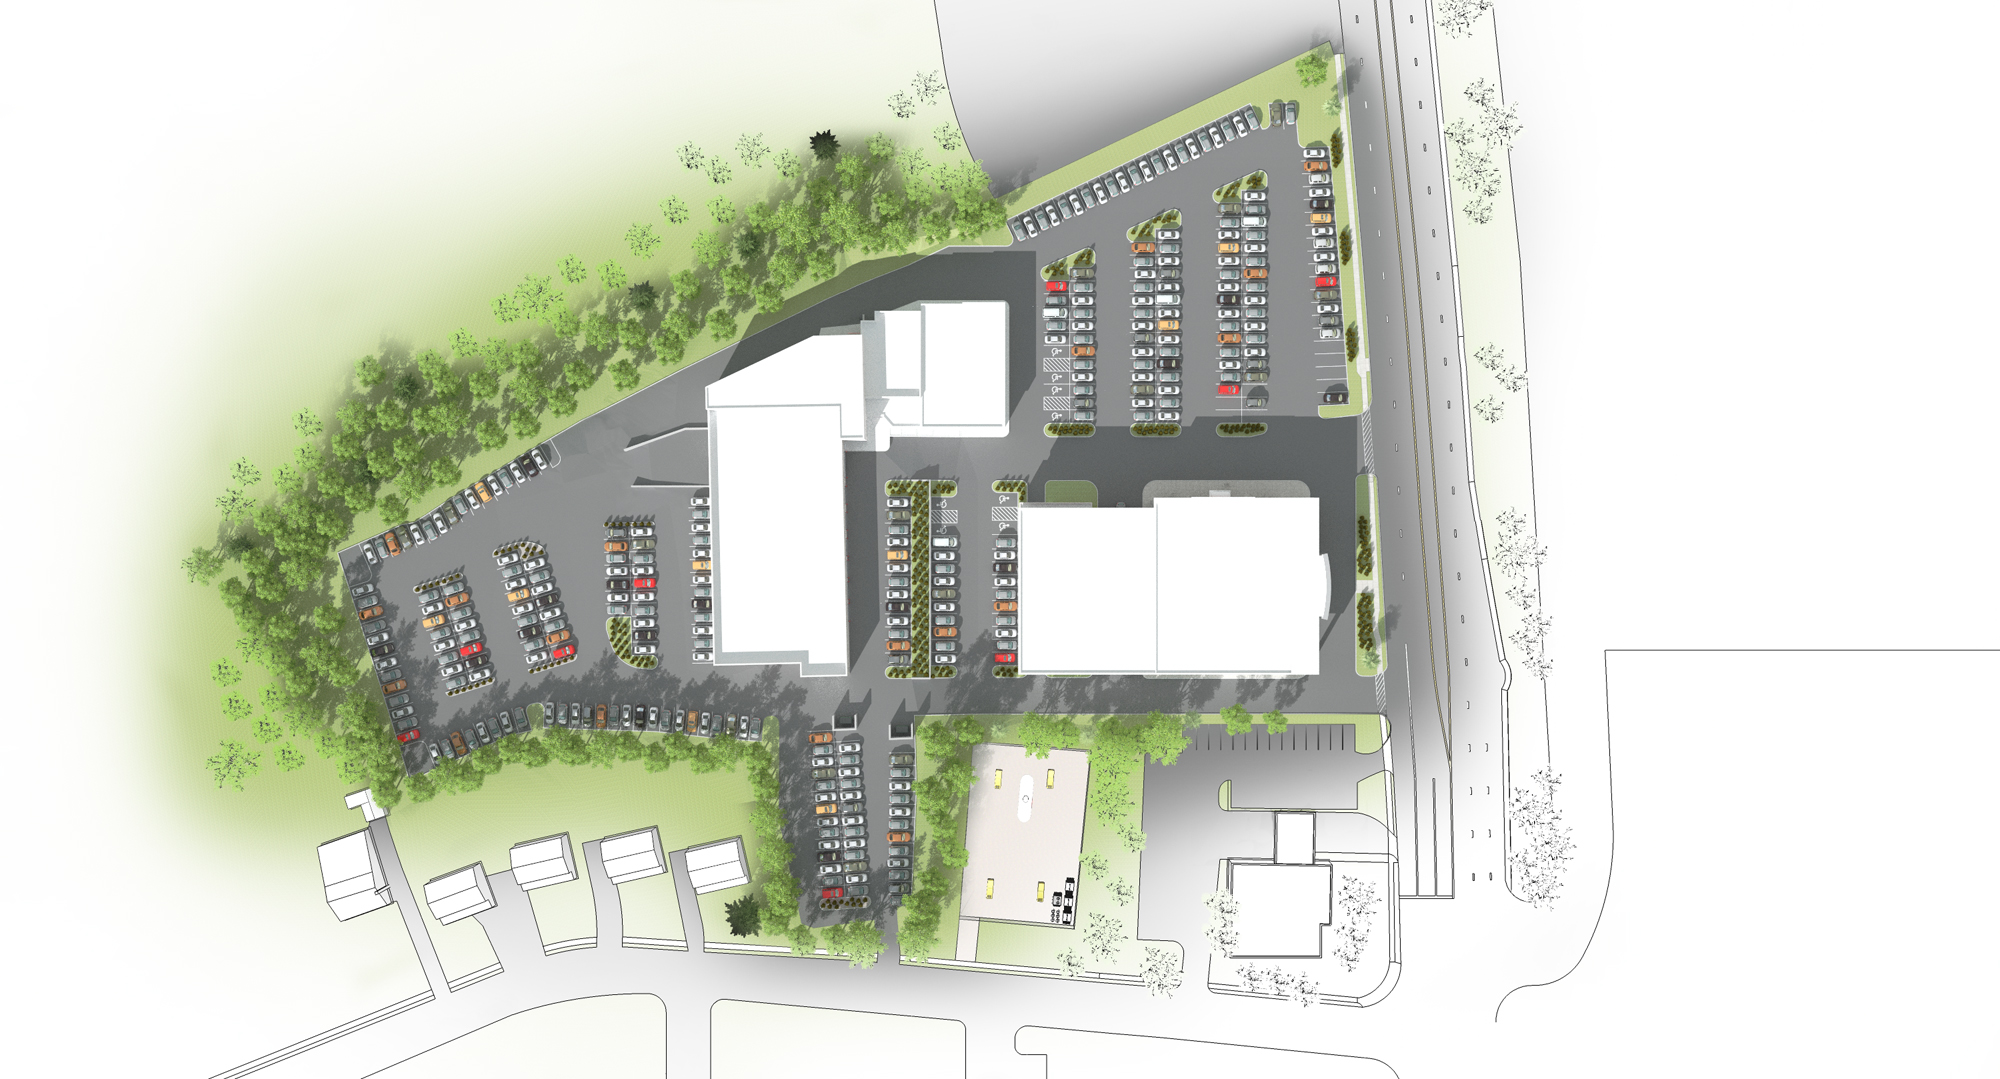 Conicelli Toyota Springfield Facility Plan